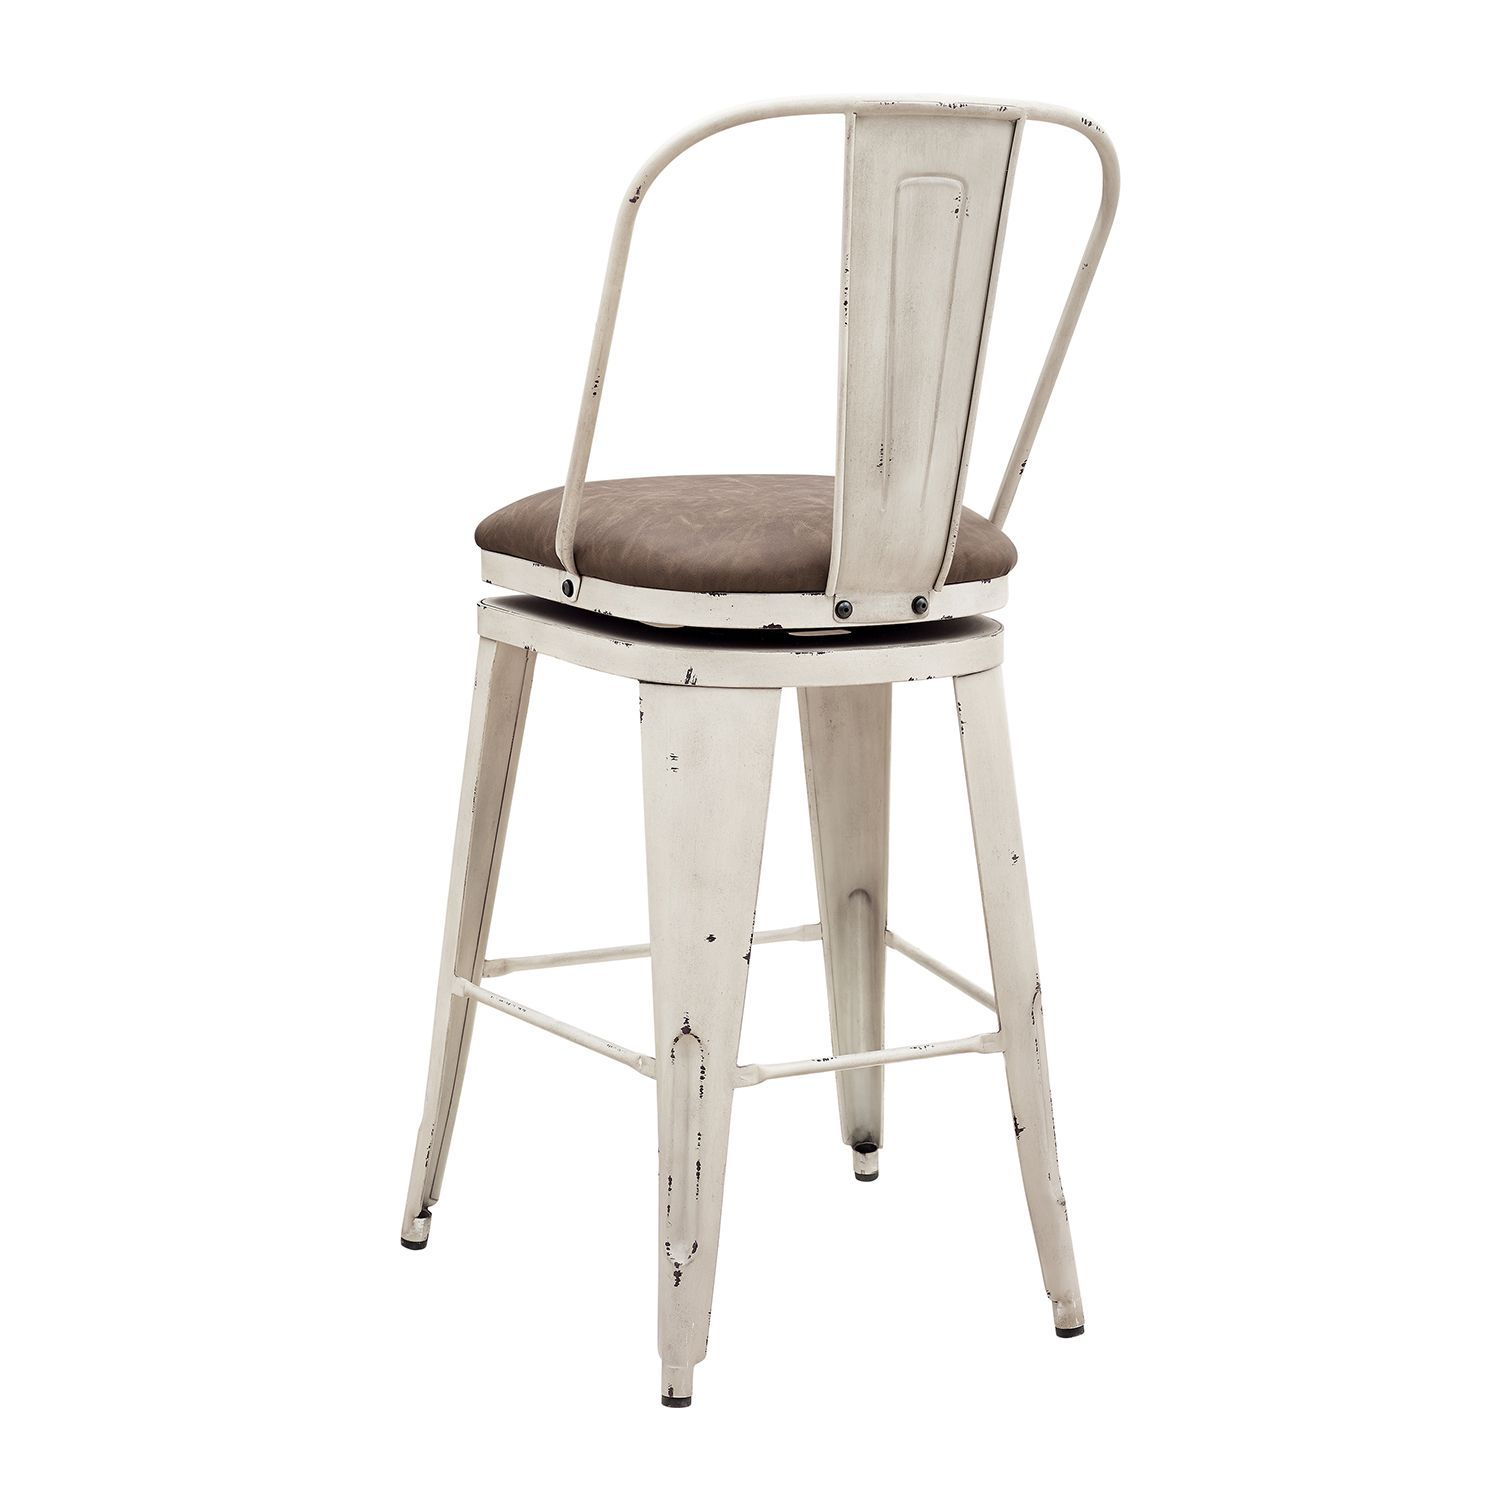 Distressed Antique White Metal Swivel Bar Stool Bar Stools Swivel Bar Stools White Bar Stools